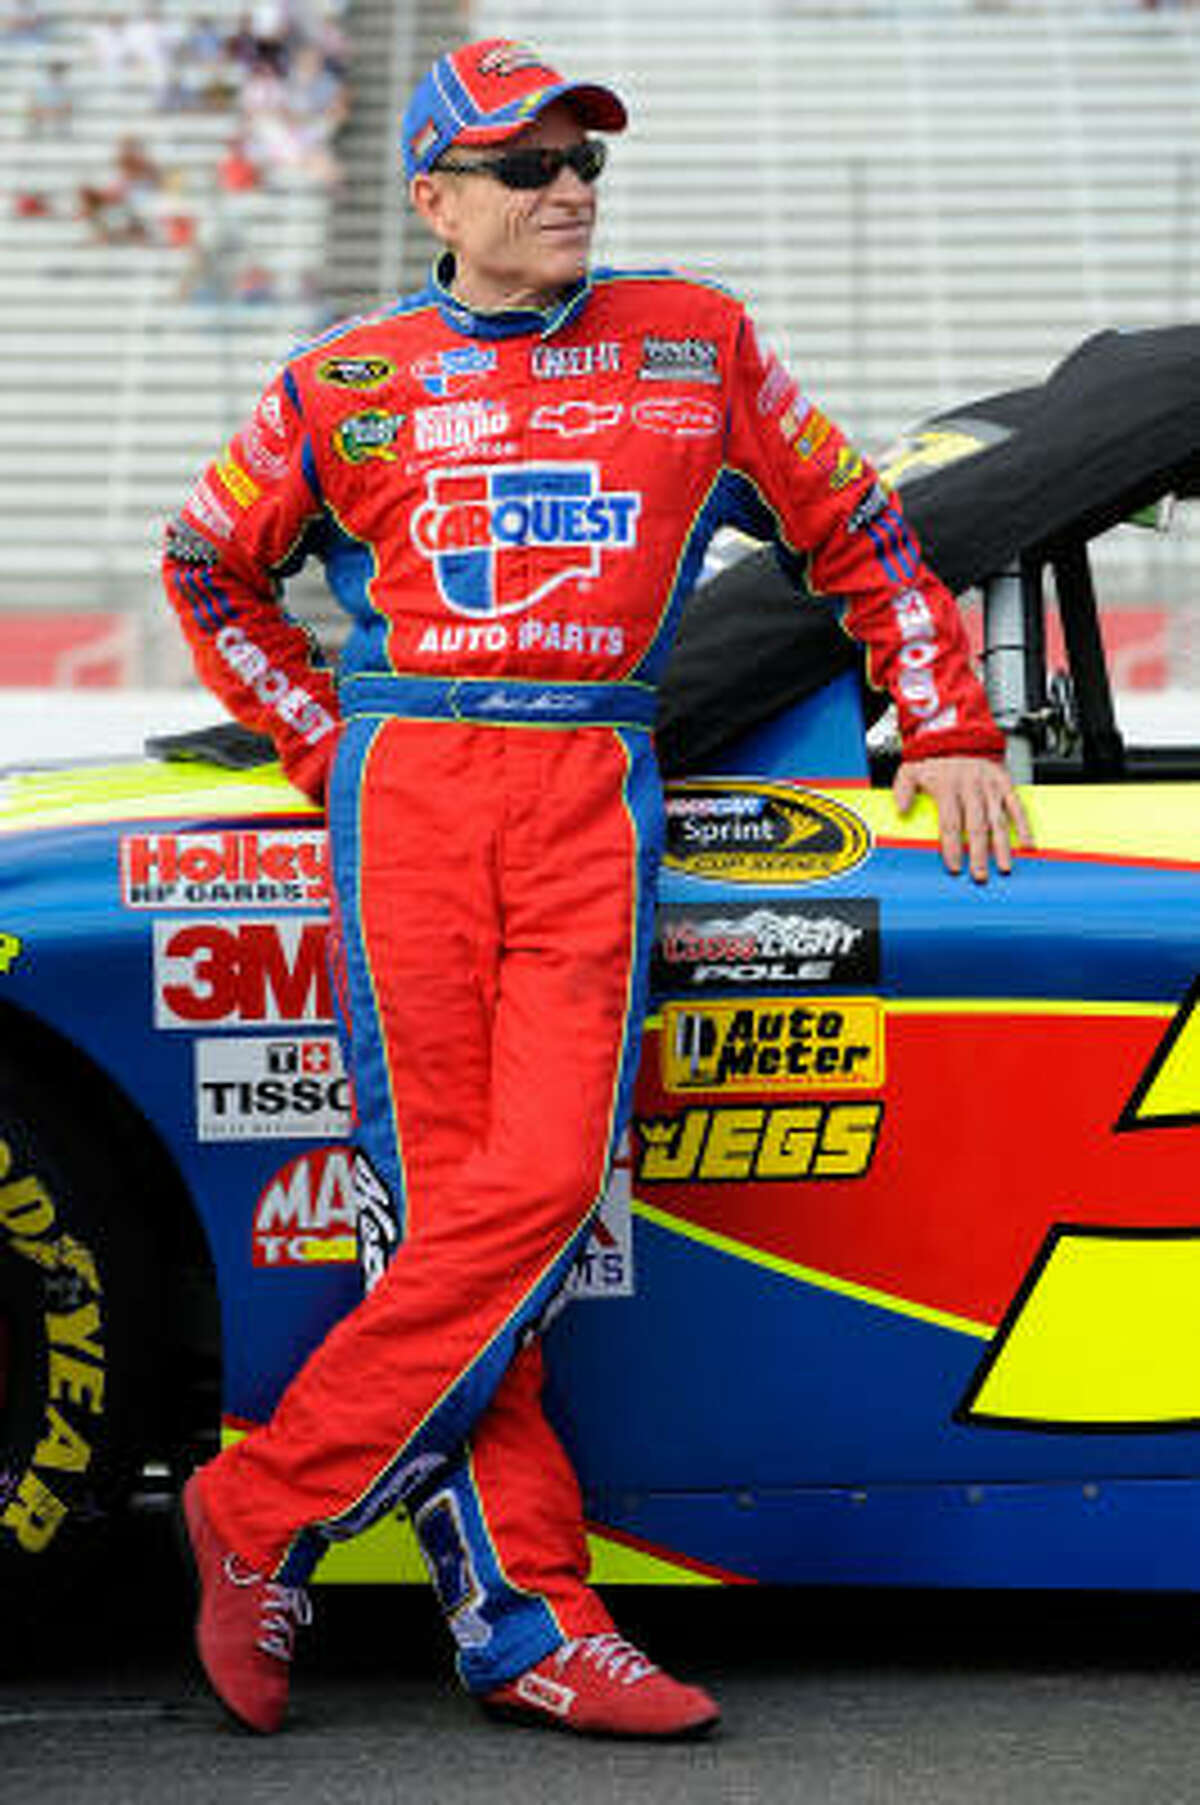 1. Mark Martin Driving the Kellogg's Chevrolet, Martin comes in with nine top 5 finishes including four wins and six poles in 26 starts.